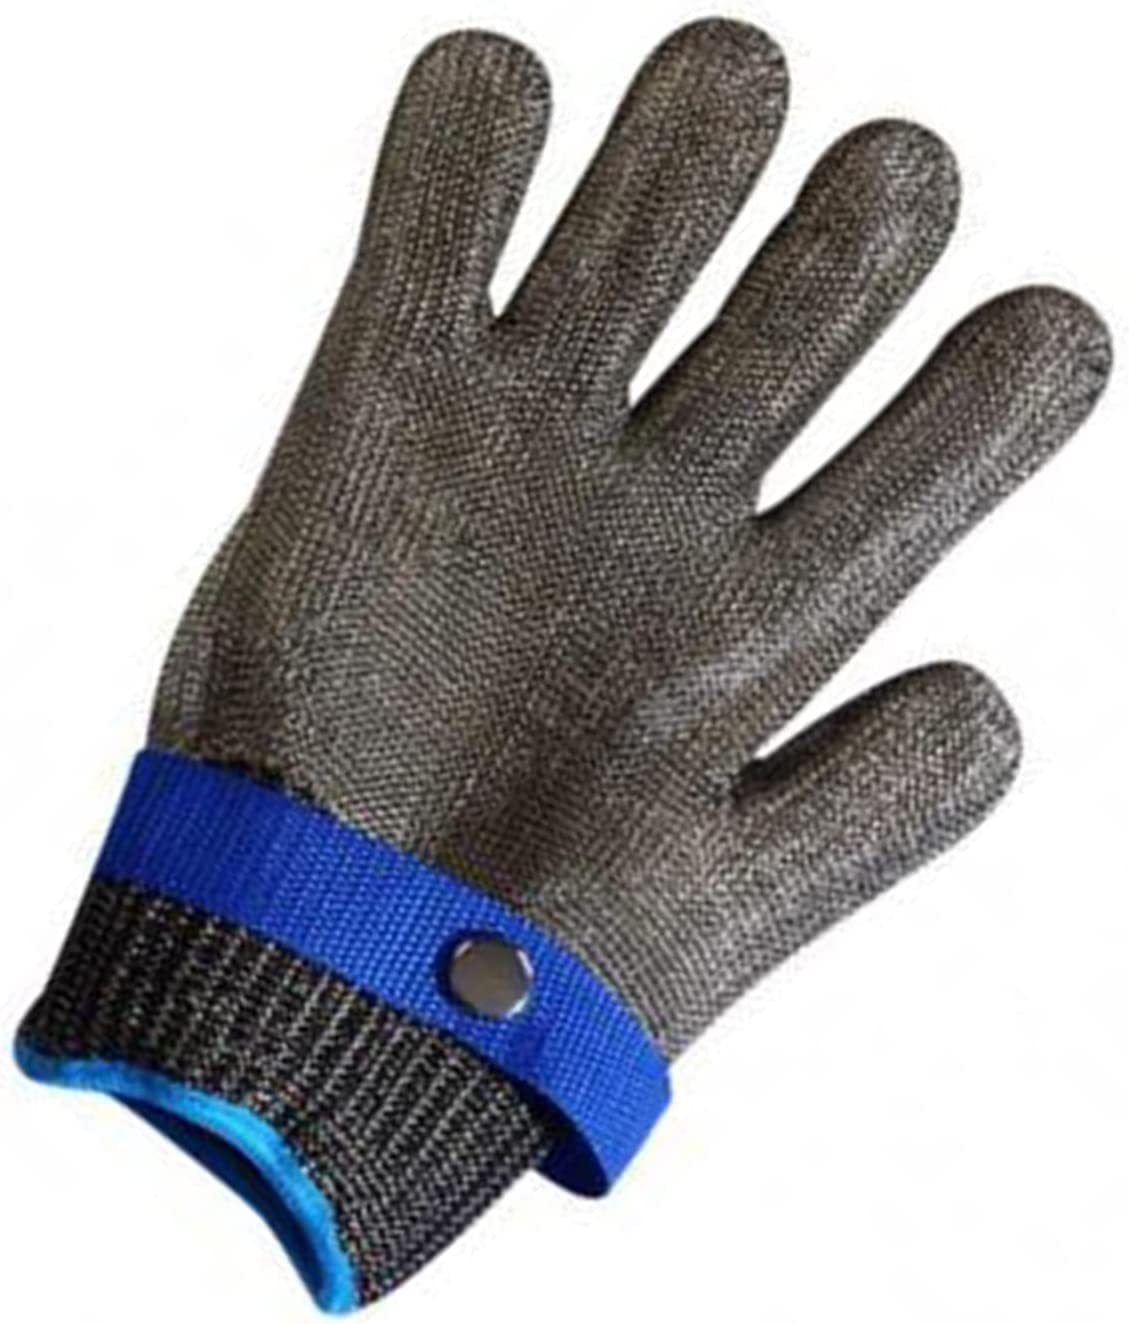 WXYZ Cut Bombing new work Resistant Glove security Steel 316 Stainless